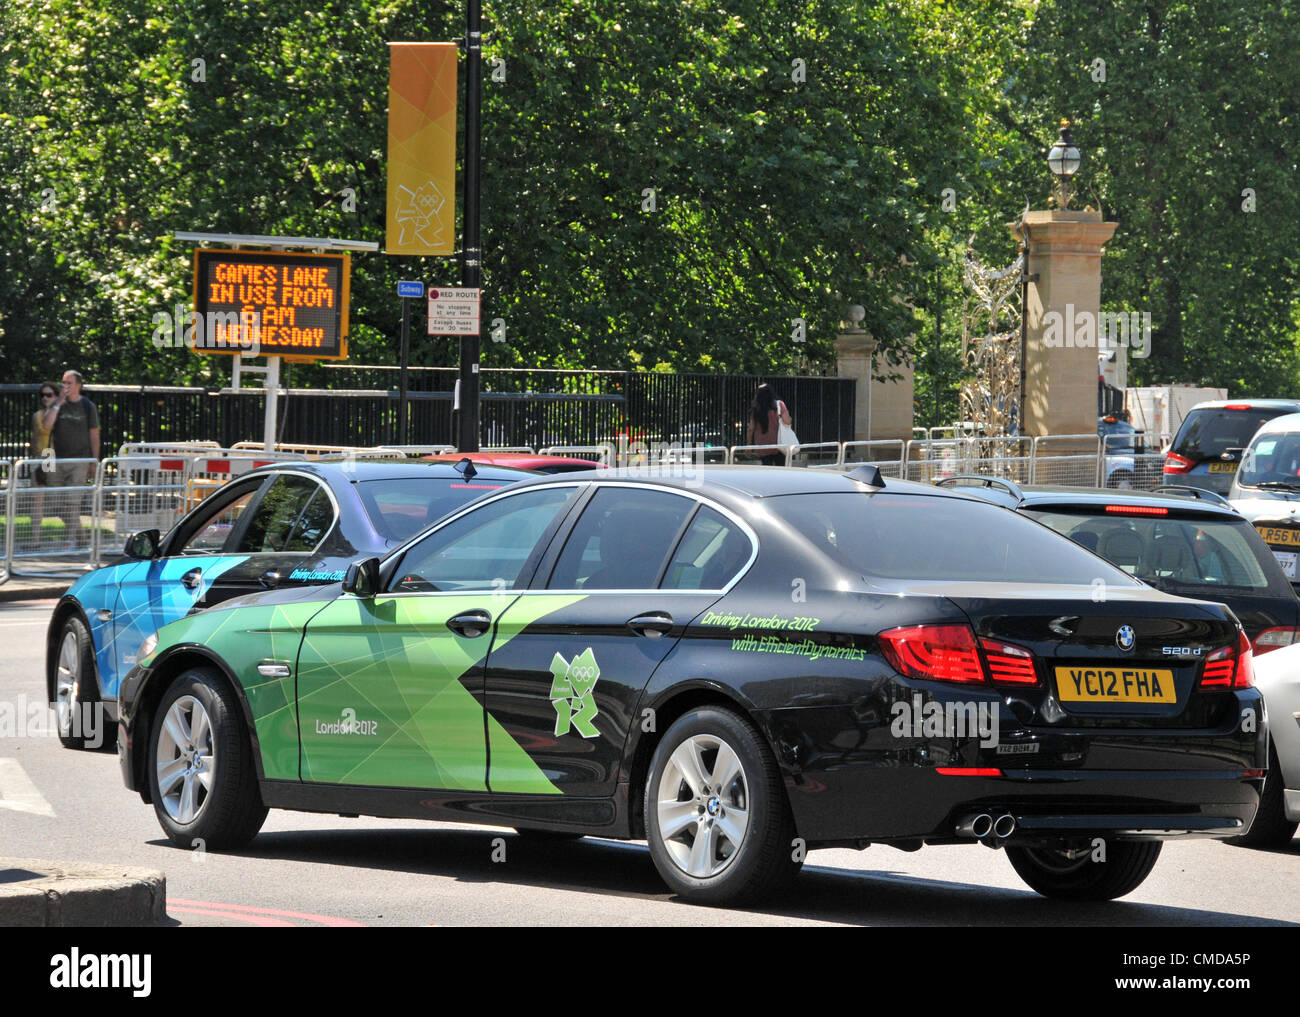 Hyde Park Corner, London, UK. 23rd July 2012. Games lane signs and official Olympic livery BMW cars are all over - Stock Image